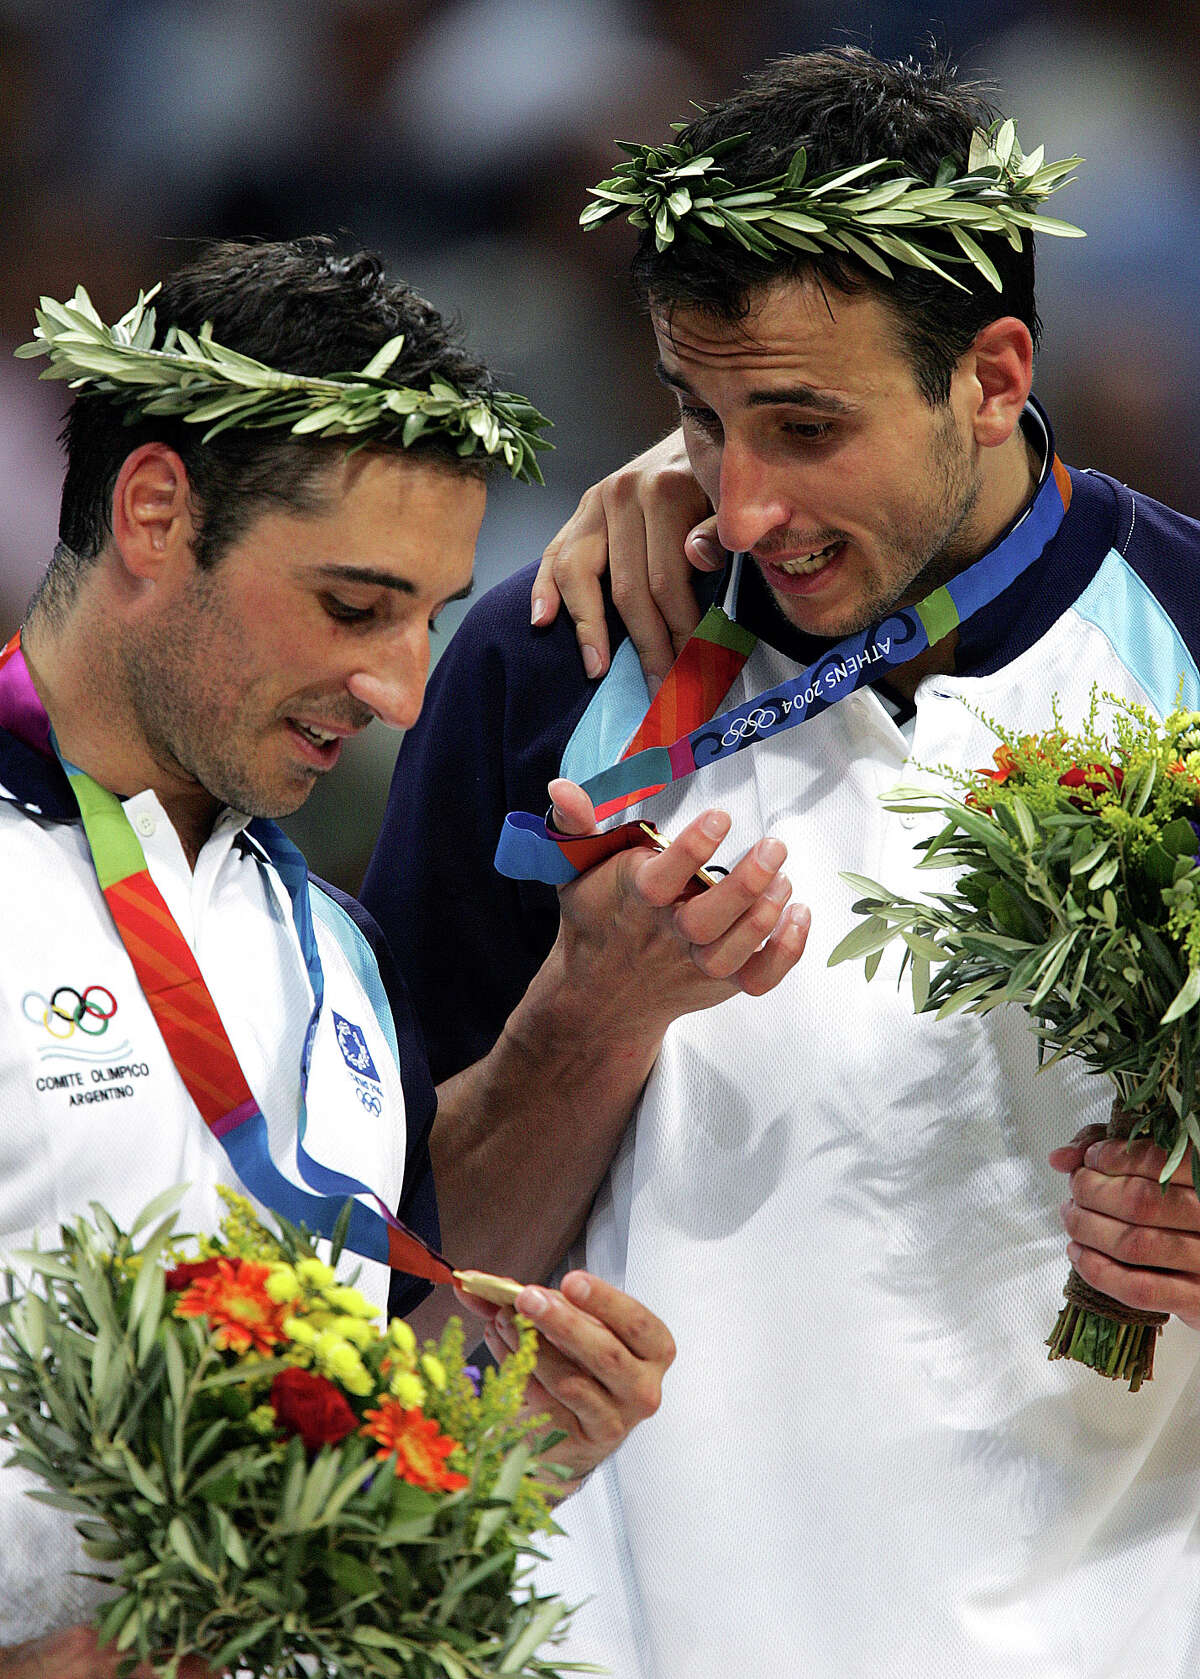 Argentina's Alejandro Montecchia, left, and Emanuel Ginobili study their gold medals after beating Italy 84-69 in their game at the Olympic Indoor Hall during the 2004 Olympics in Athens, Greece on Saturday, Aug. 28, 2004. (AP Photo/Dusan Vranic)